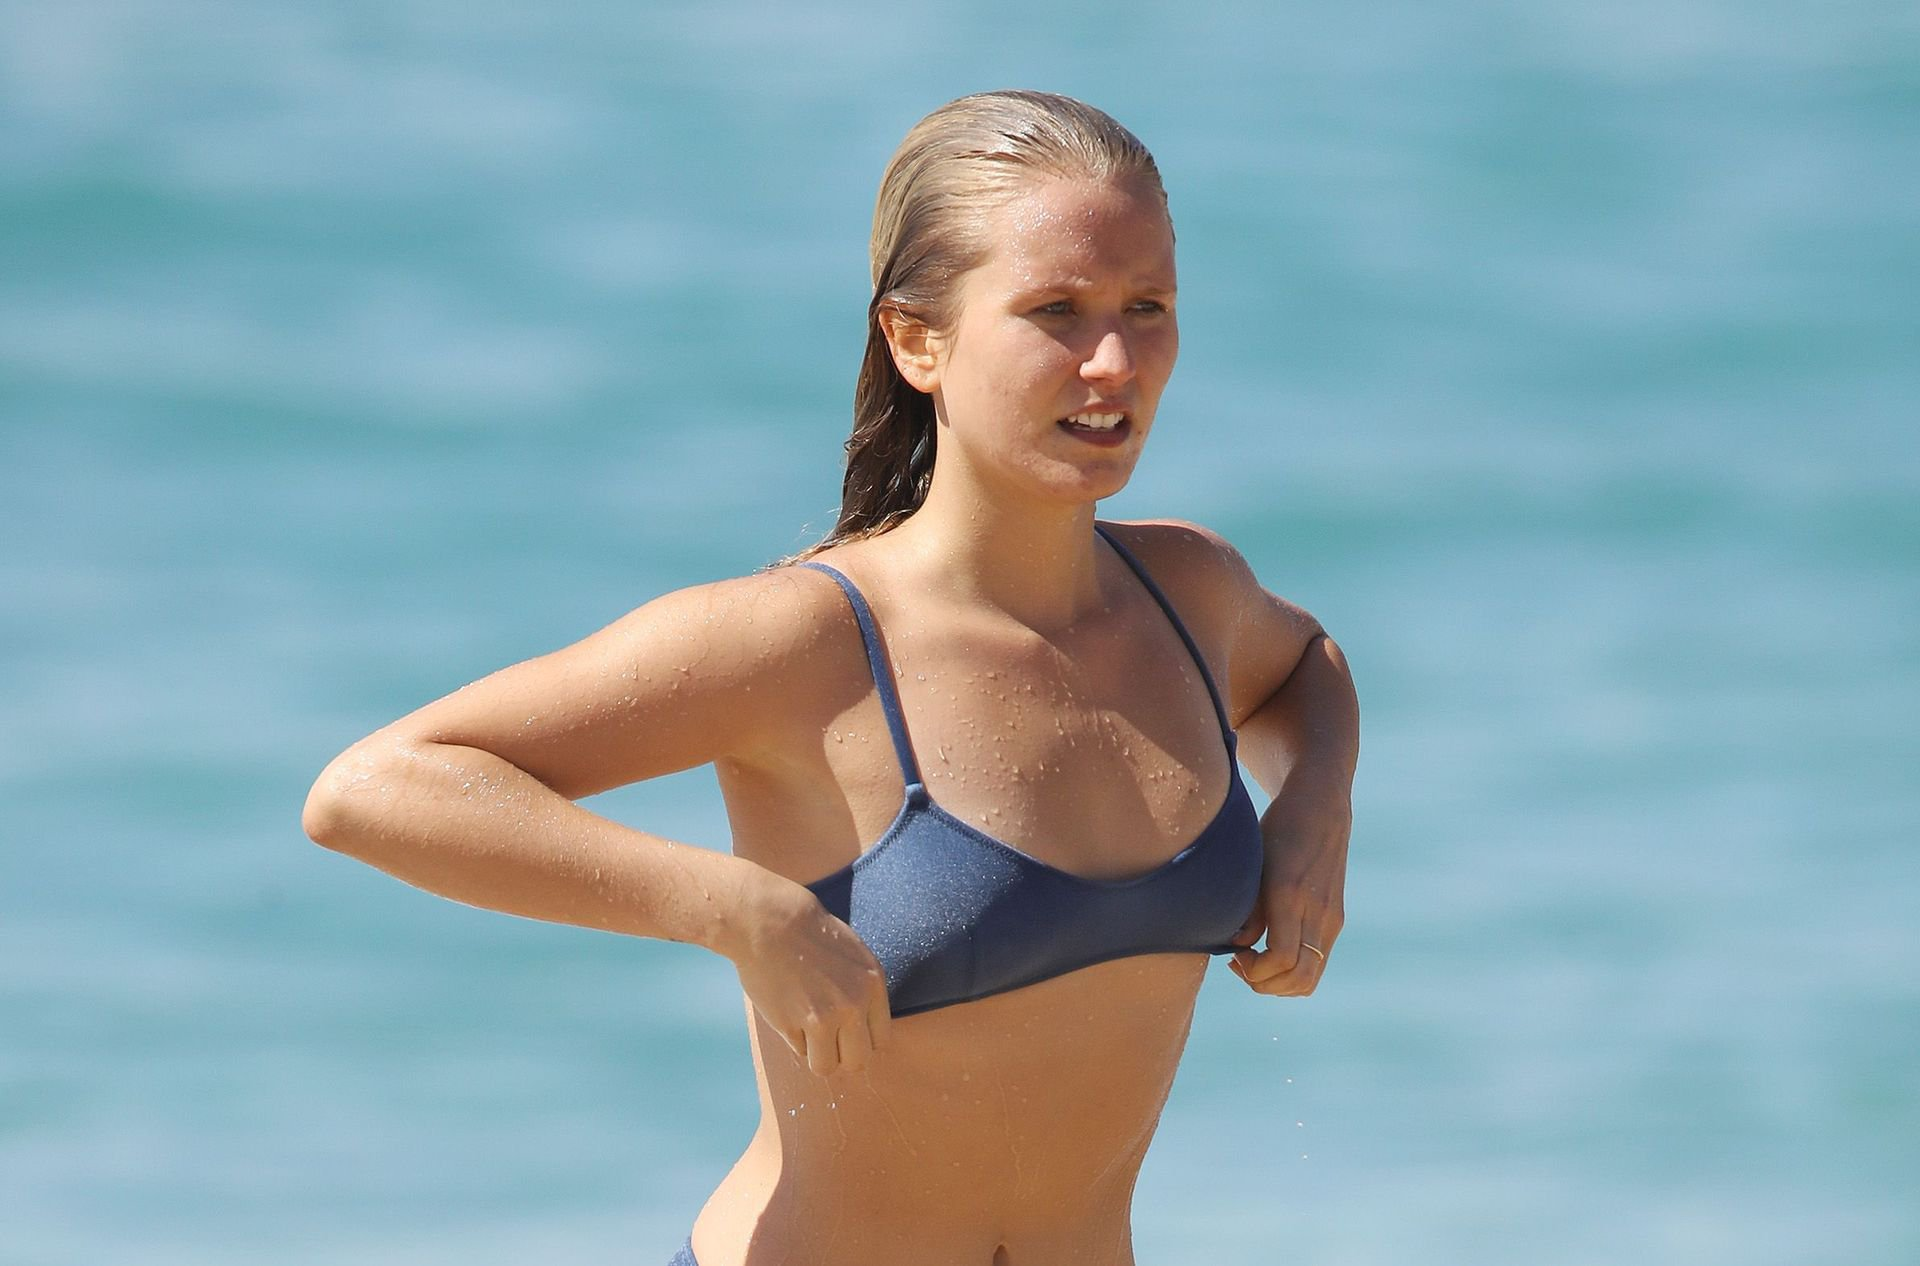 Sailor Brinkley-Cook – Bikini Candids on Coogee Beach in Sydney